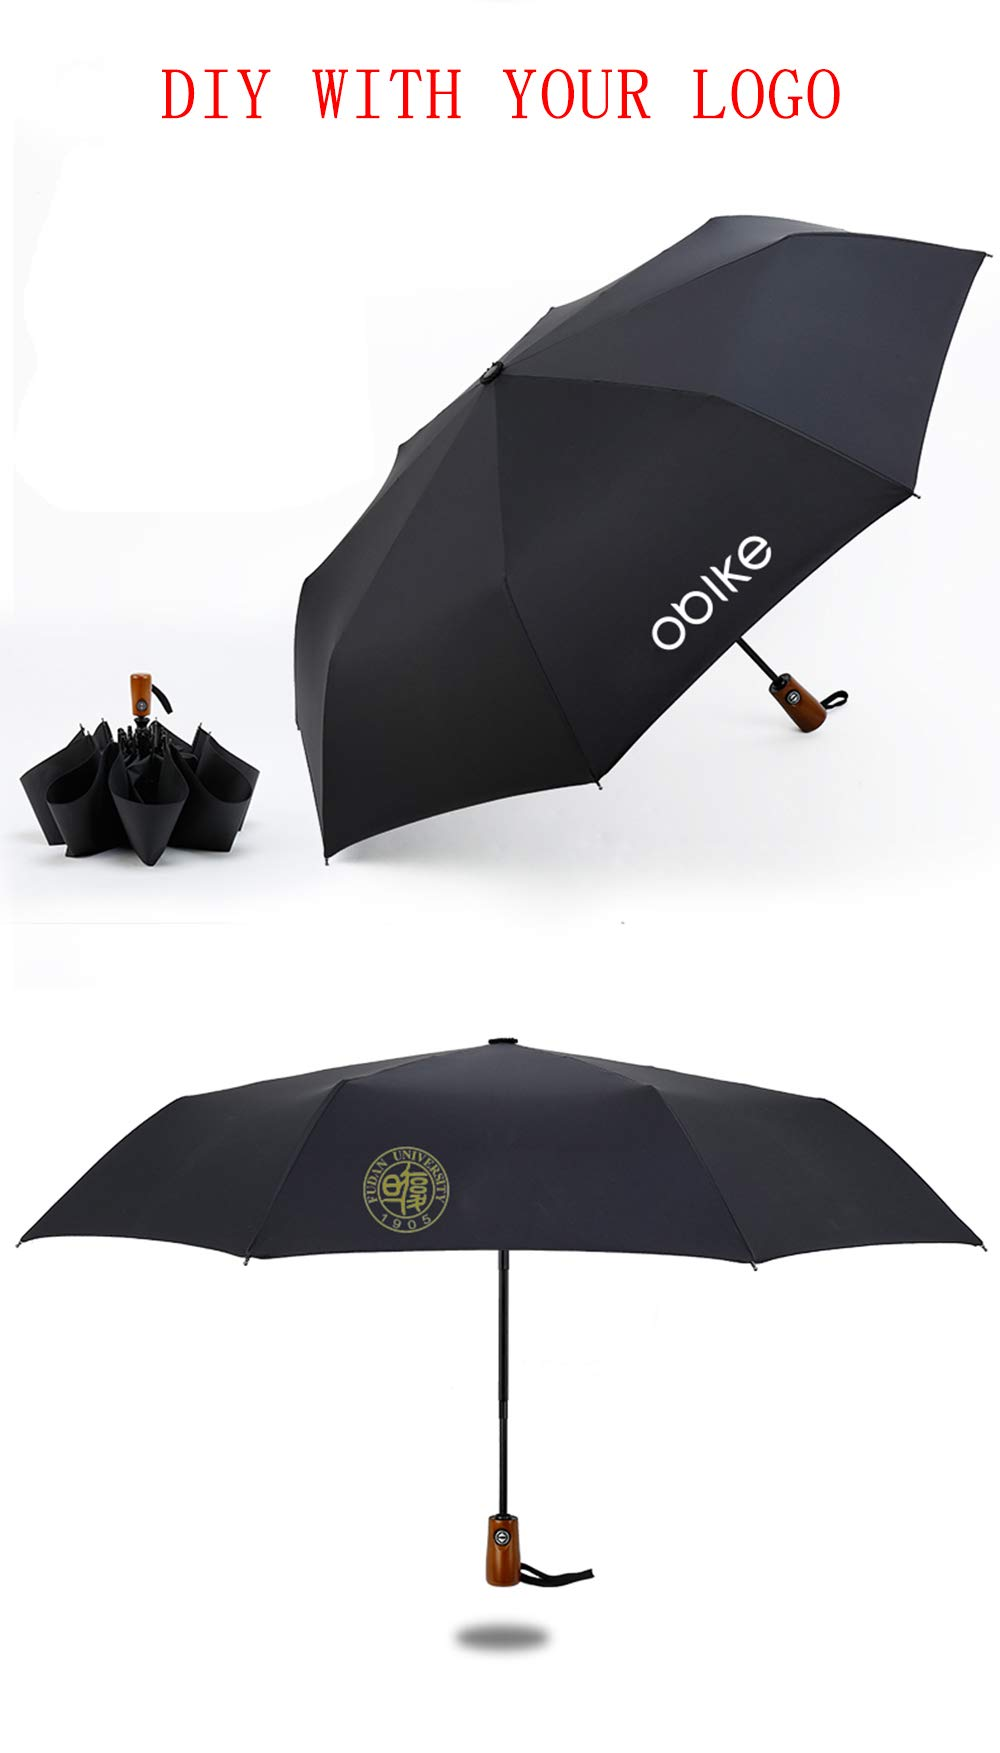 Custom-made Personalized Umbrella Design Your Own Logo/Image for Rainy/Sunny Folding Umbrellas (Including 5 pieces)